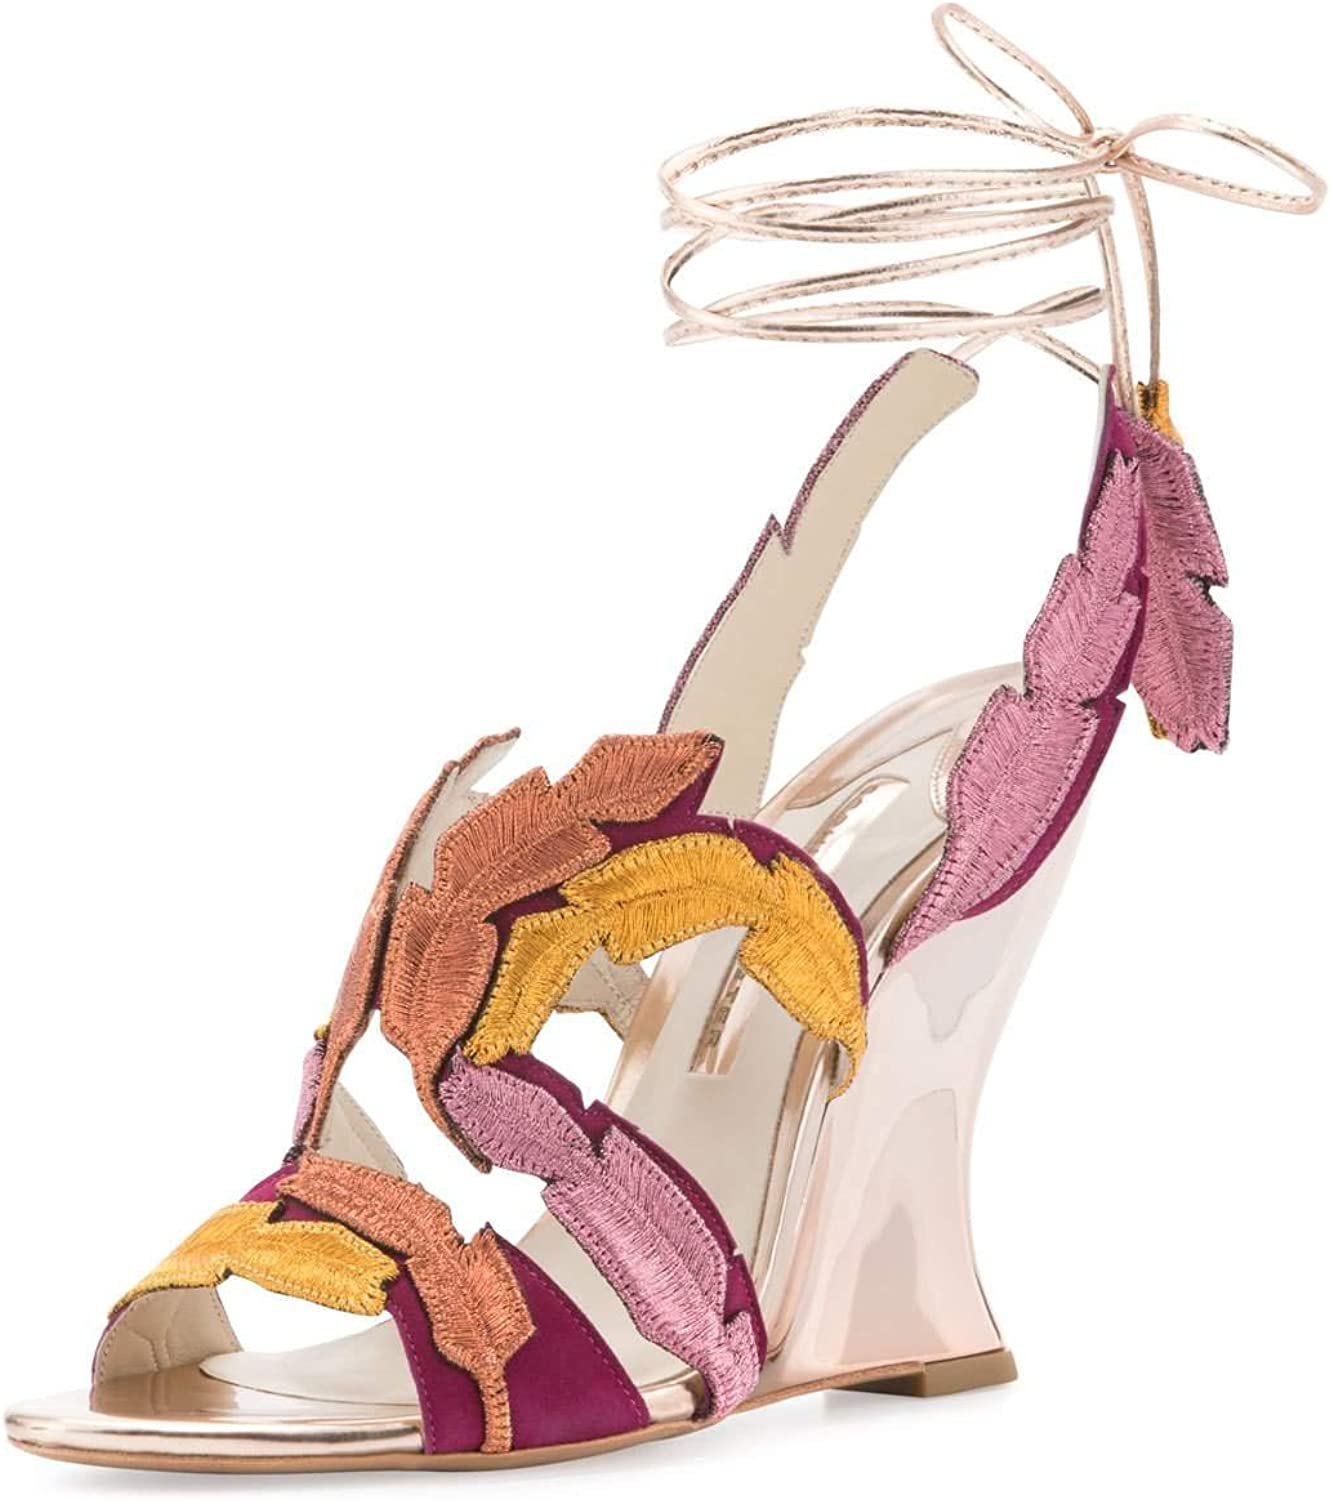 Sophia Webster Carrie Feather Wedge Sandal, Winter Cherry 37.5